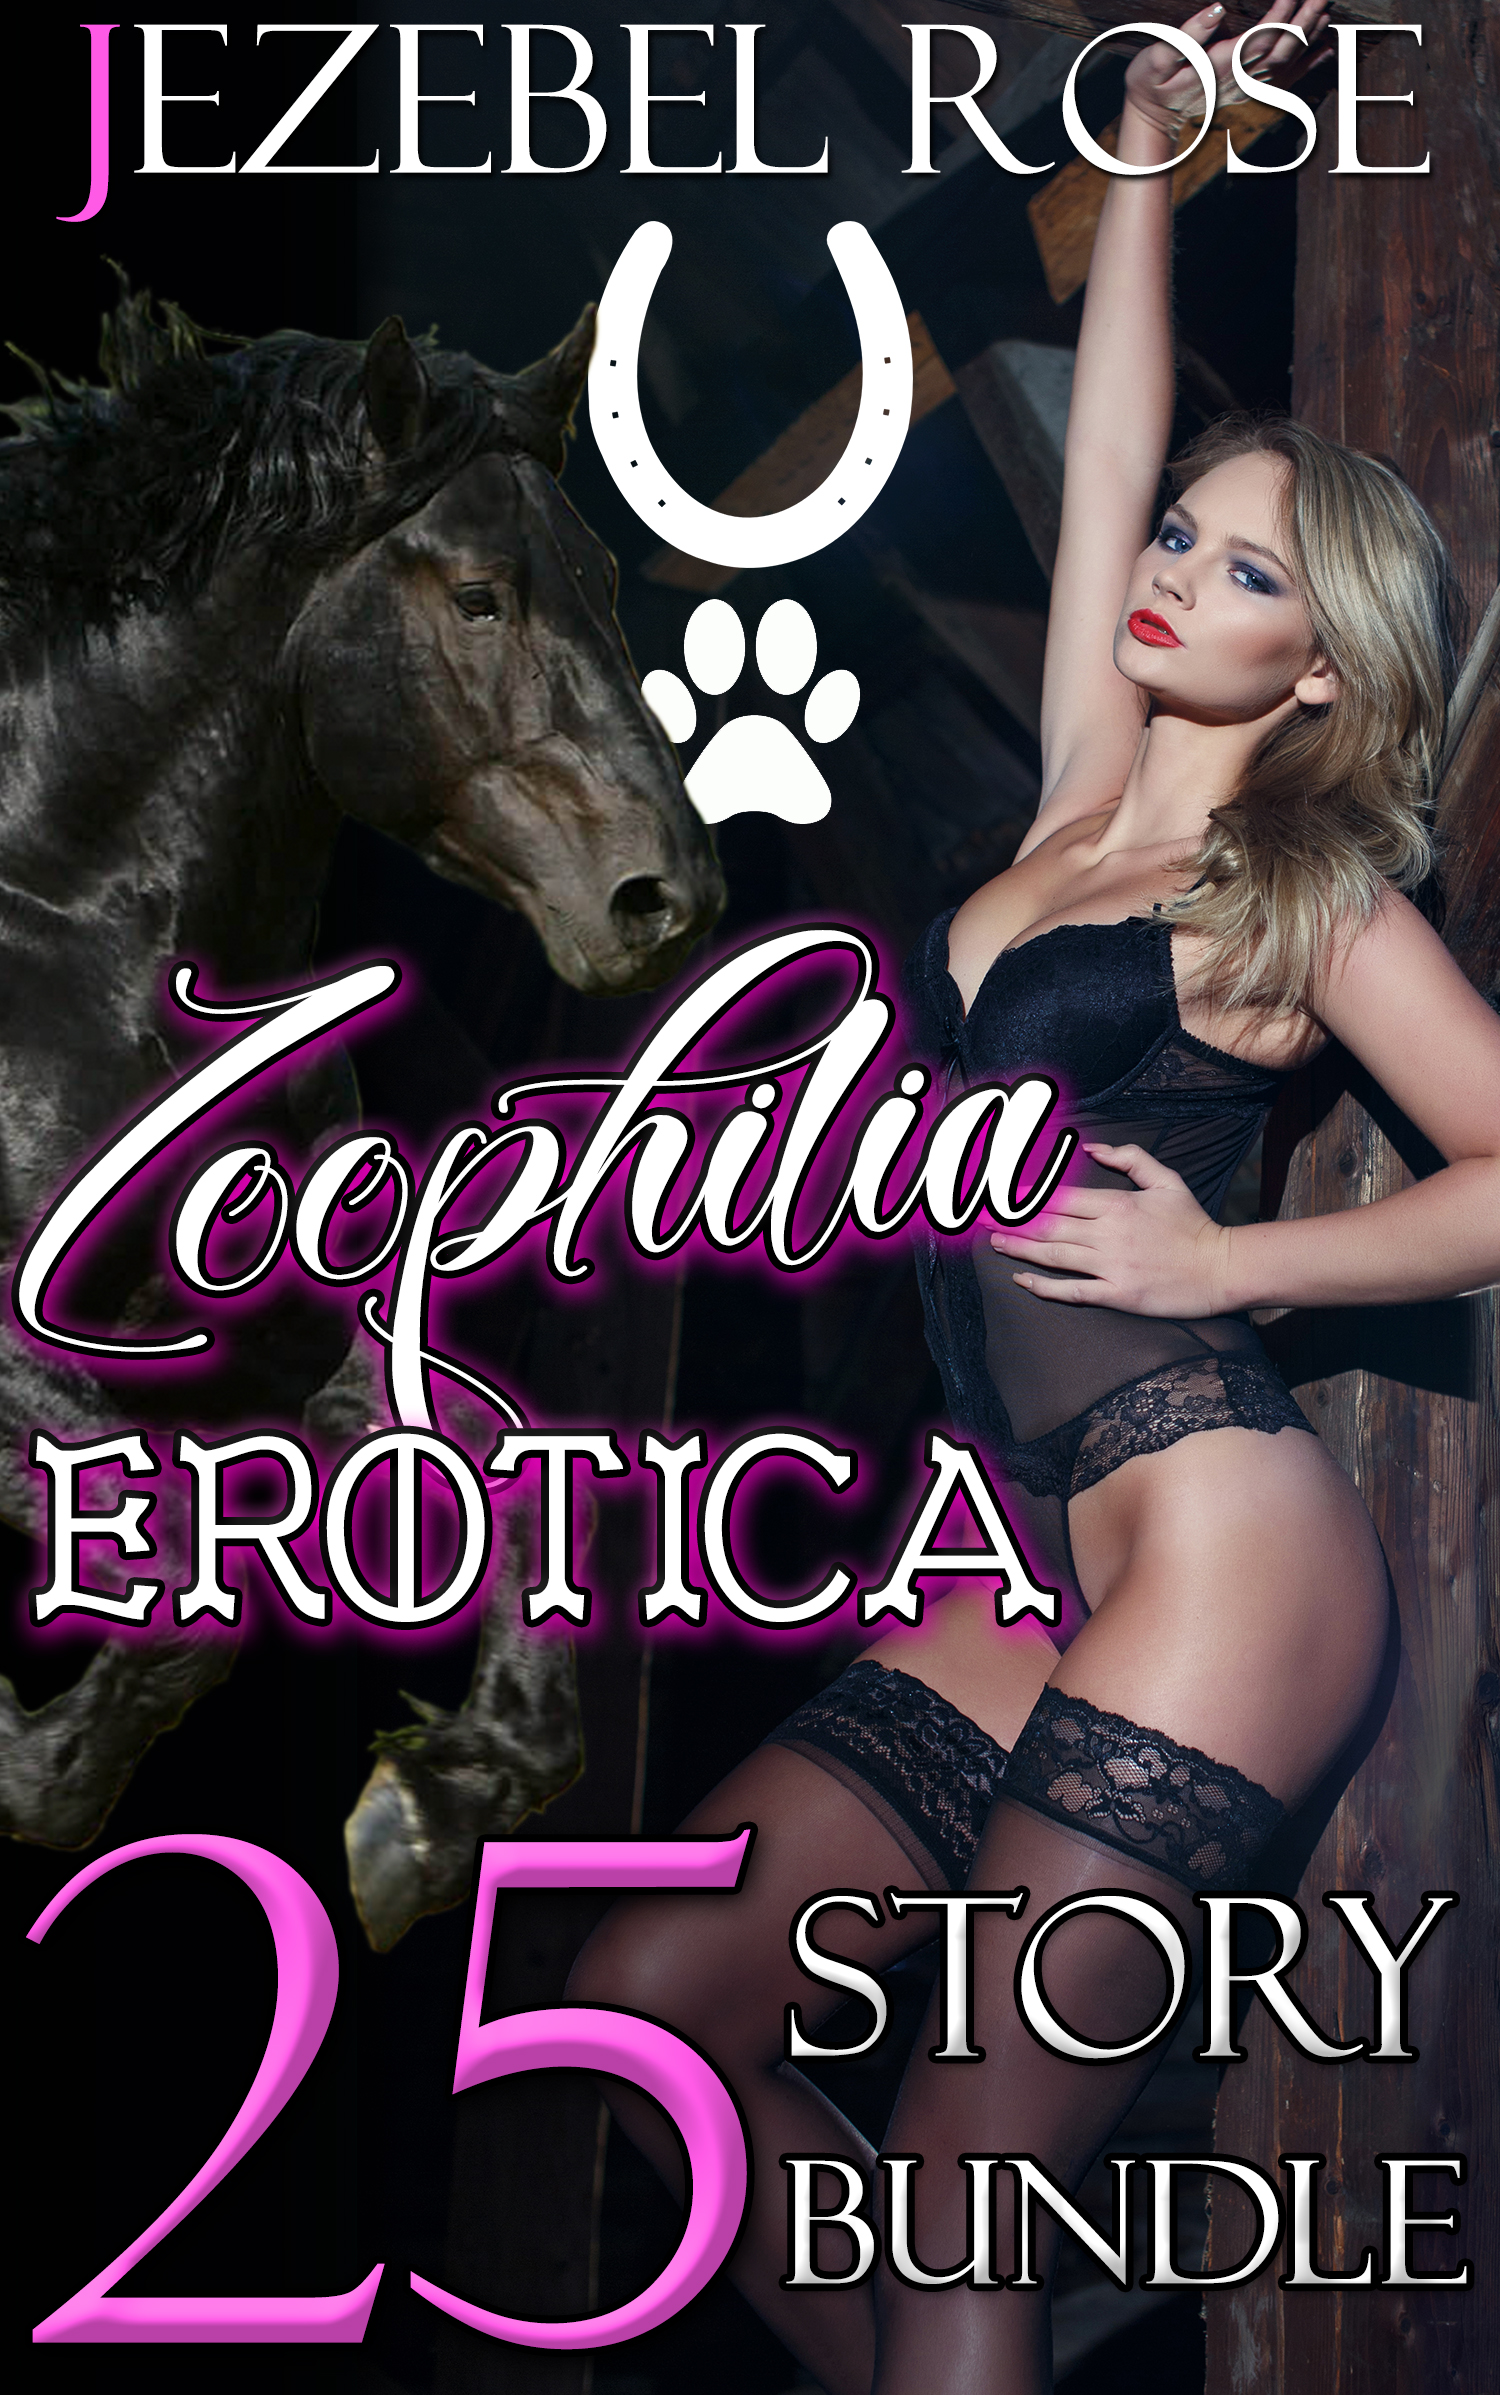 Erotic story email